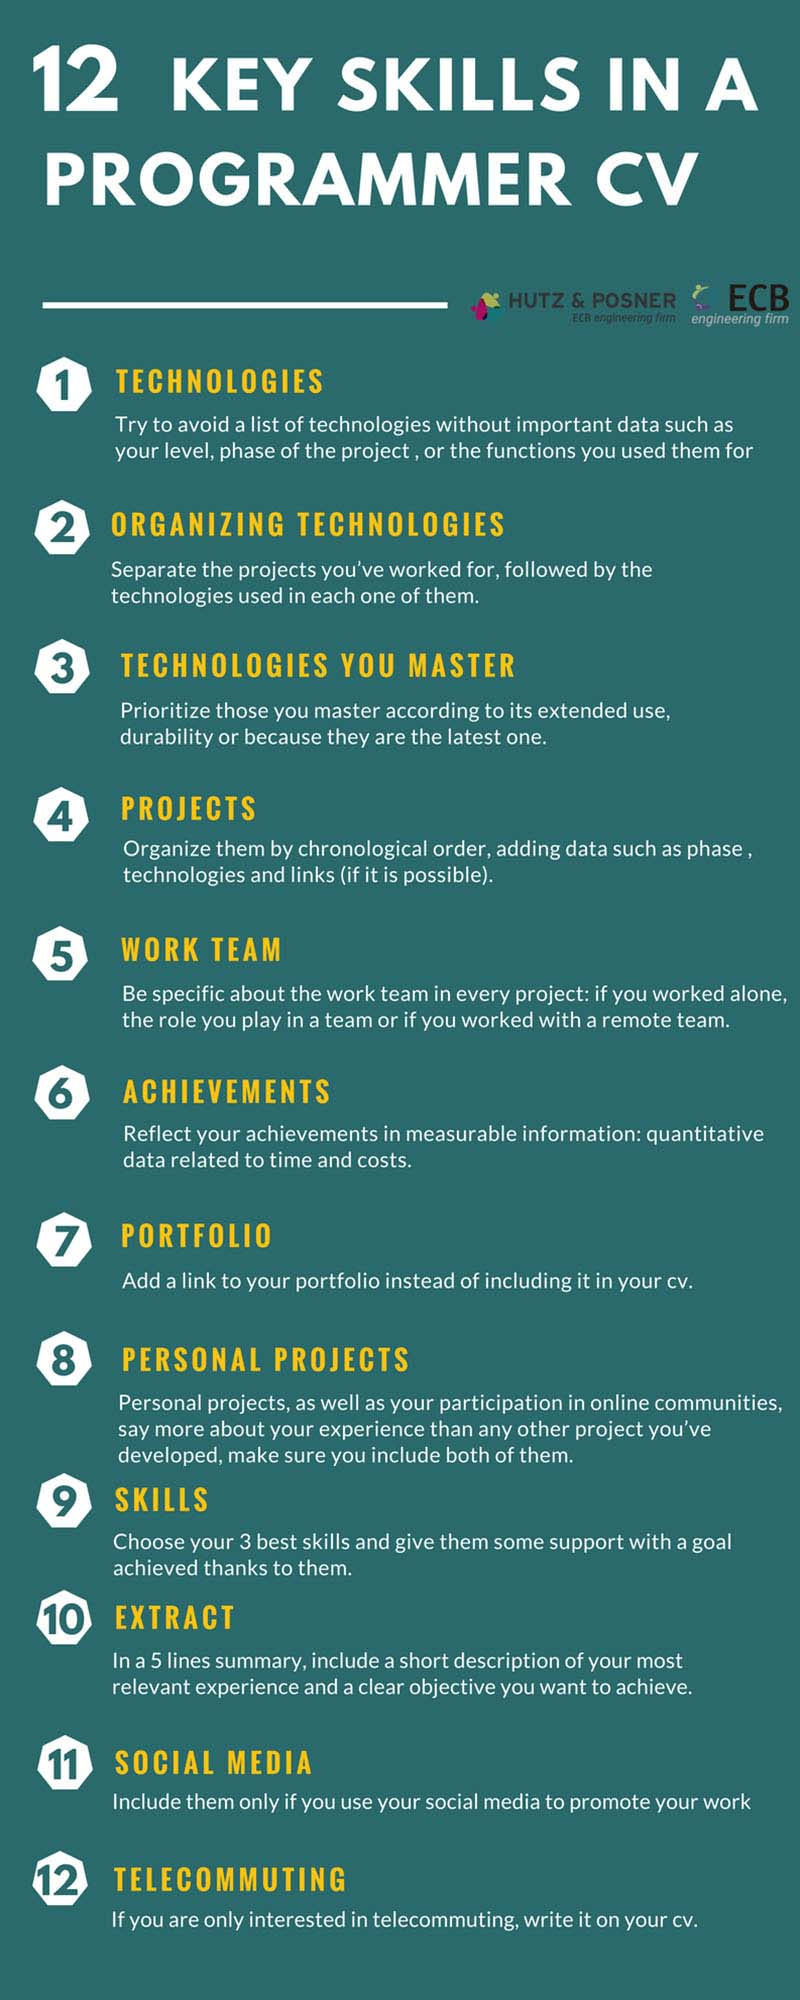 Infographic 12 Key skills in a programmer cv